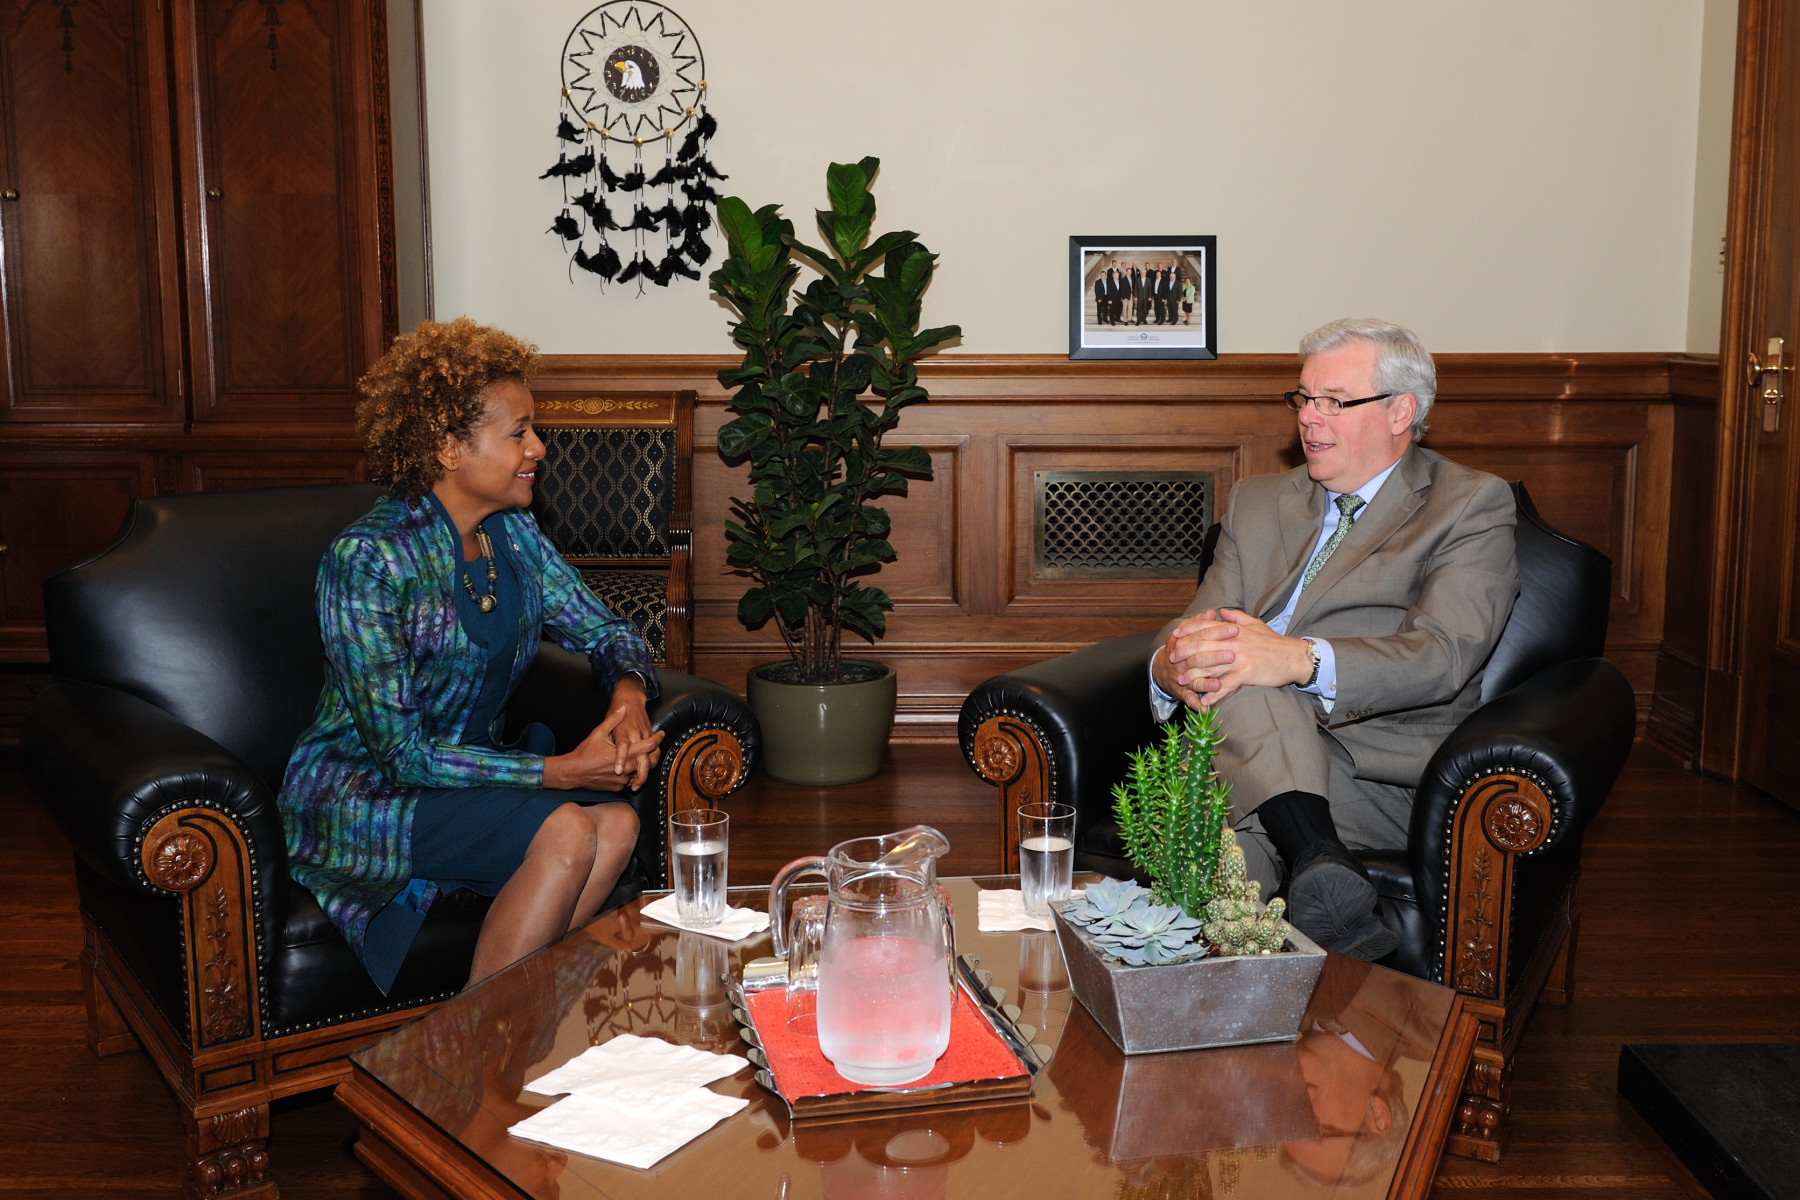 Her Excellency also met with the Honourable Greg Selinger, Premier of Manitoba.